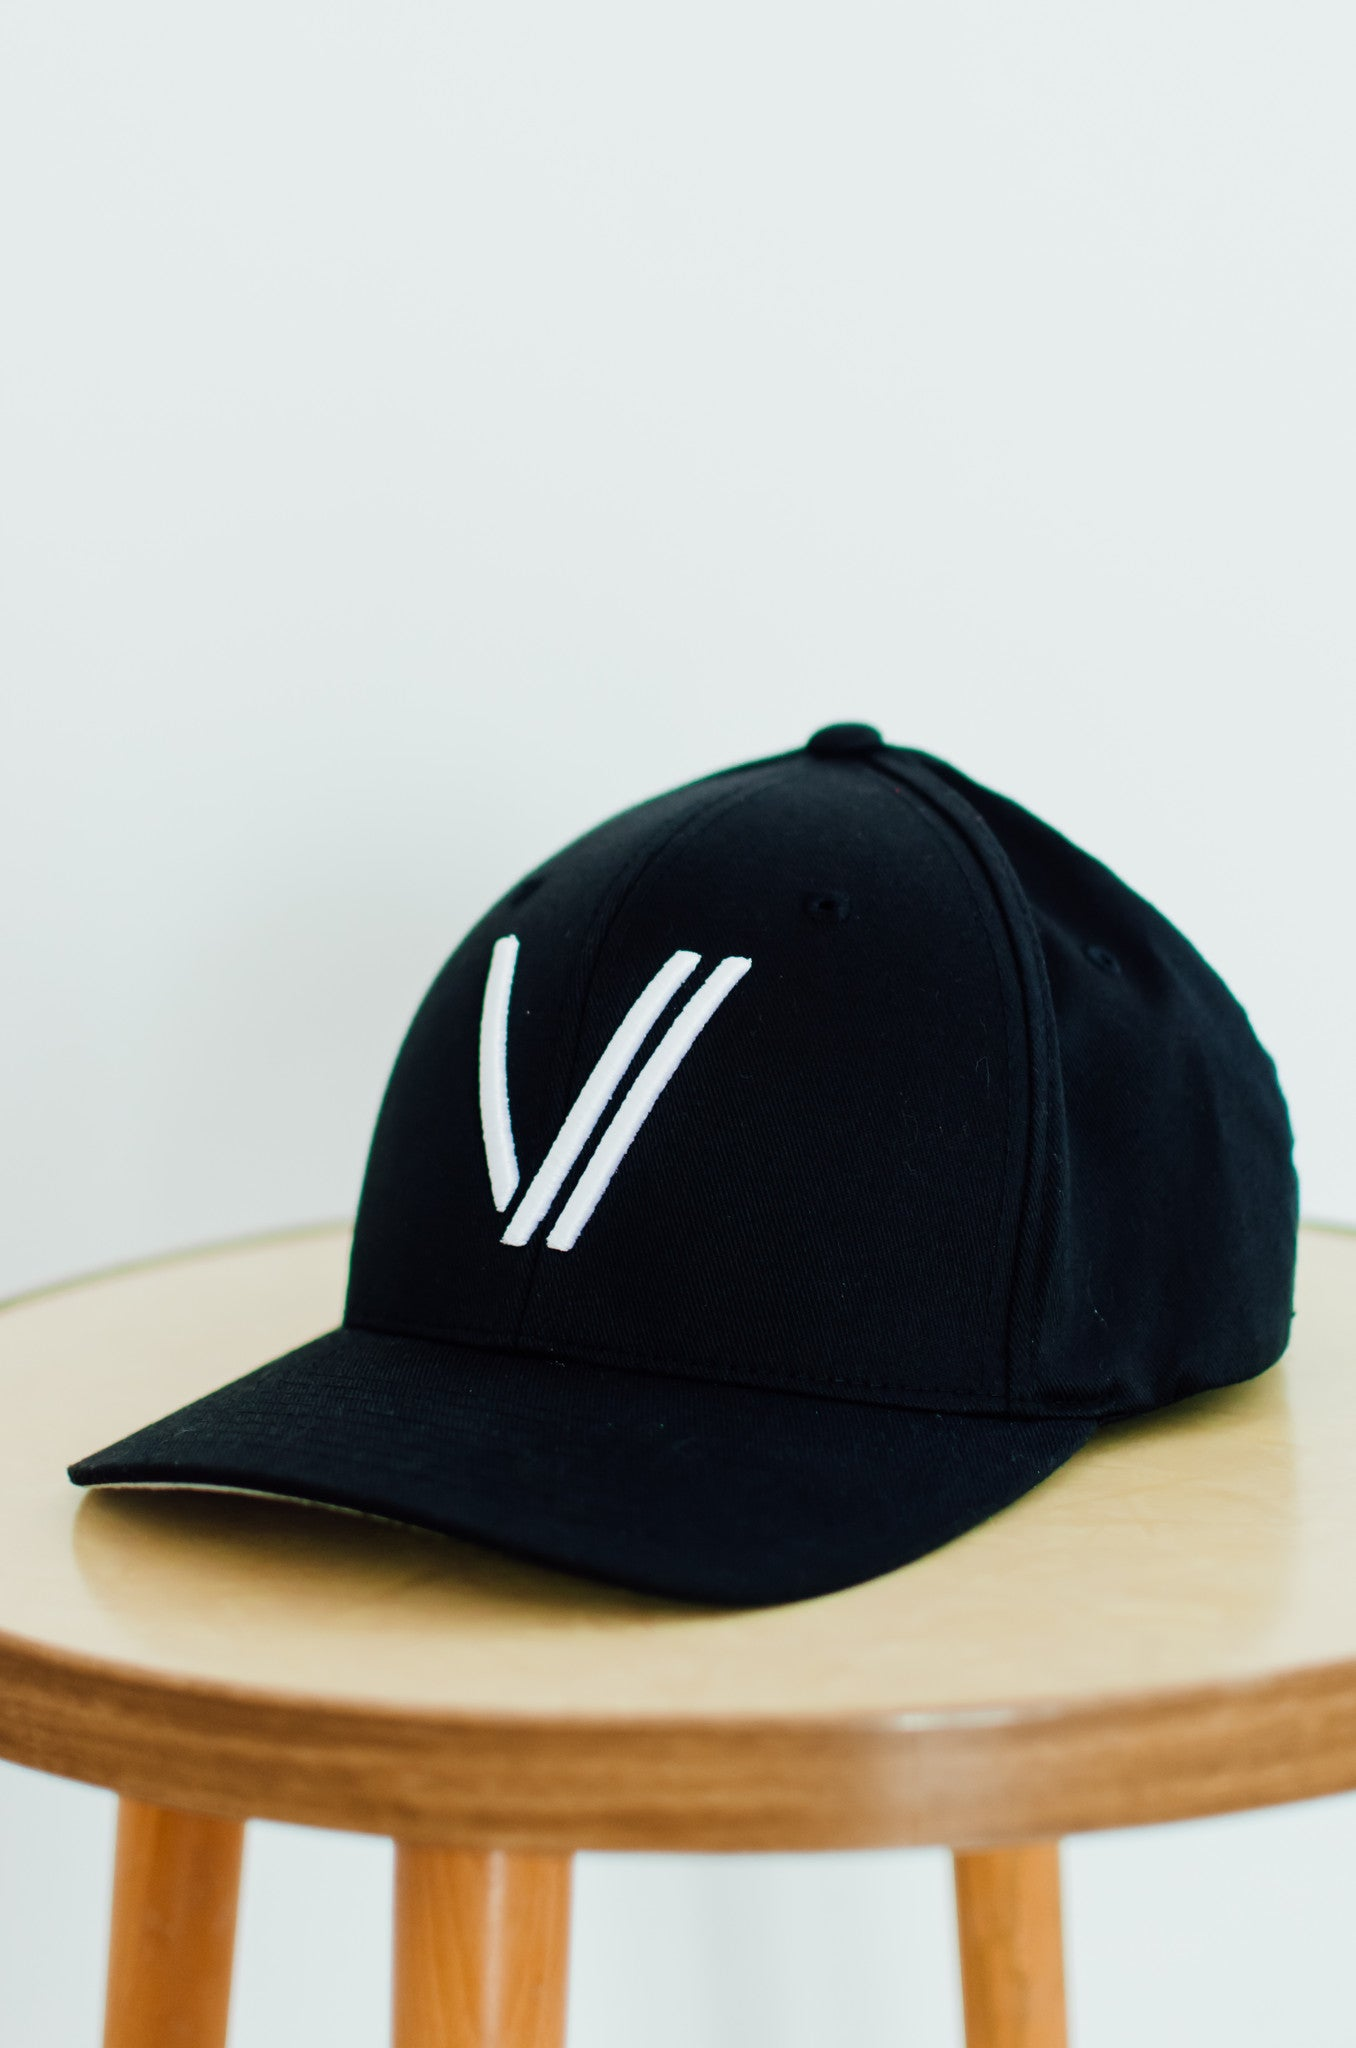 Junior V Baseball Cap Black